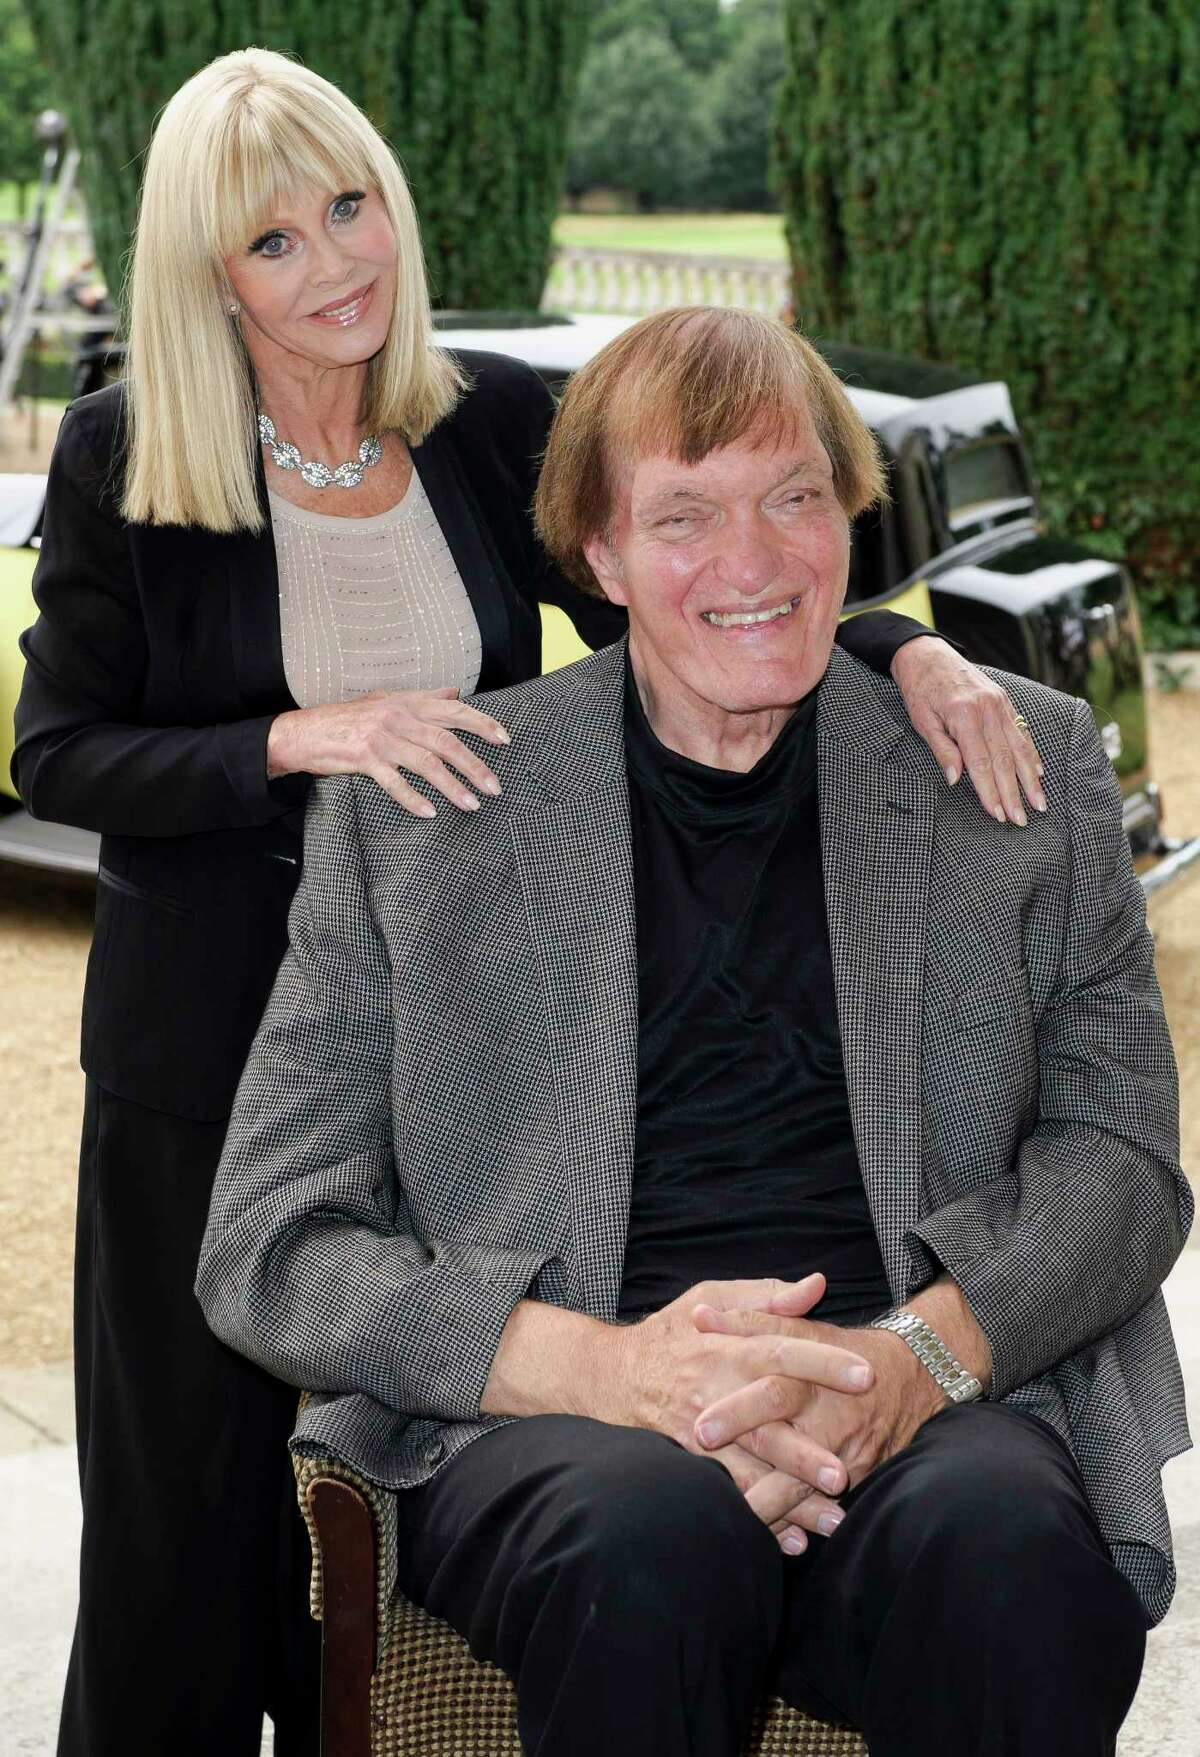 """FILE - In this Sept. 21, 2012 file photo, from left, Britt Ekland and Richard Kiel attend a photocall for the """"Bond 50"""" anniversary in London. Kiel, the towering actor best known for portraying steel-toothed villain Jaws in a pair of James Bond films, has died. He was 74."""